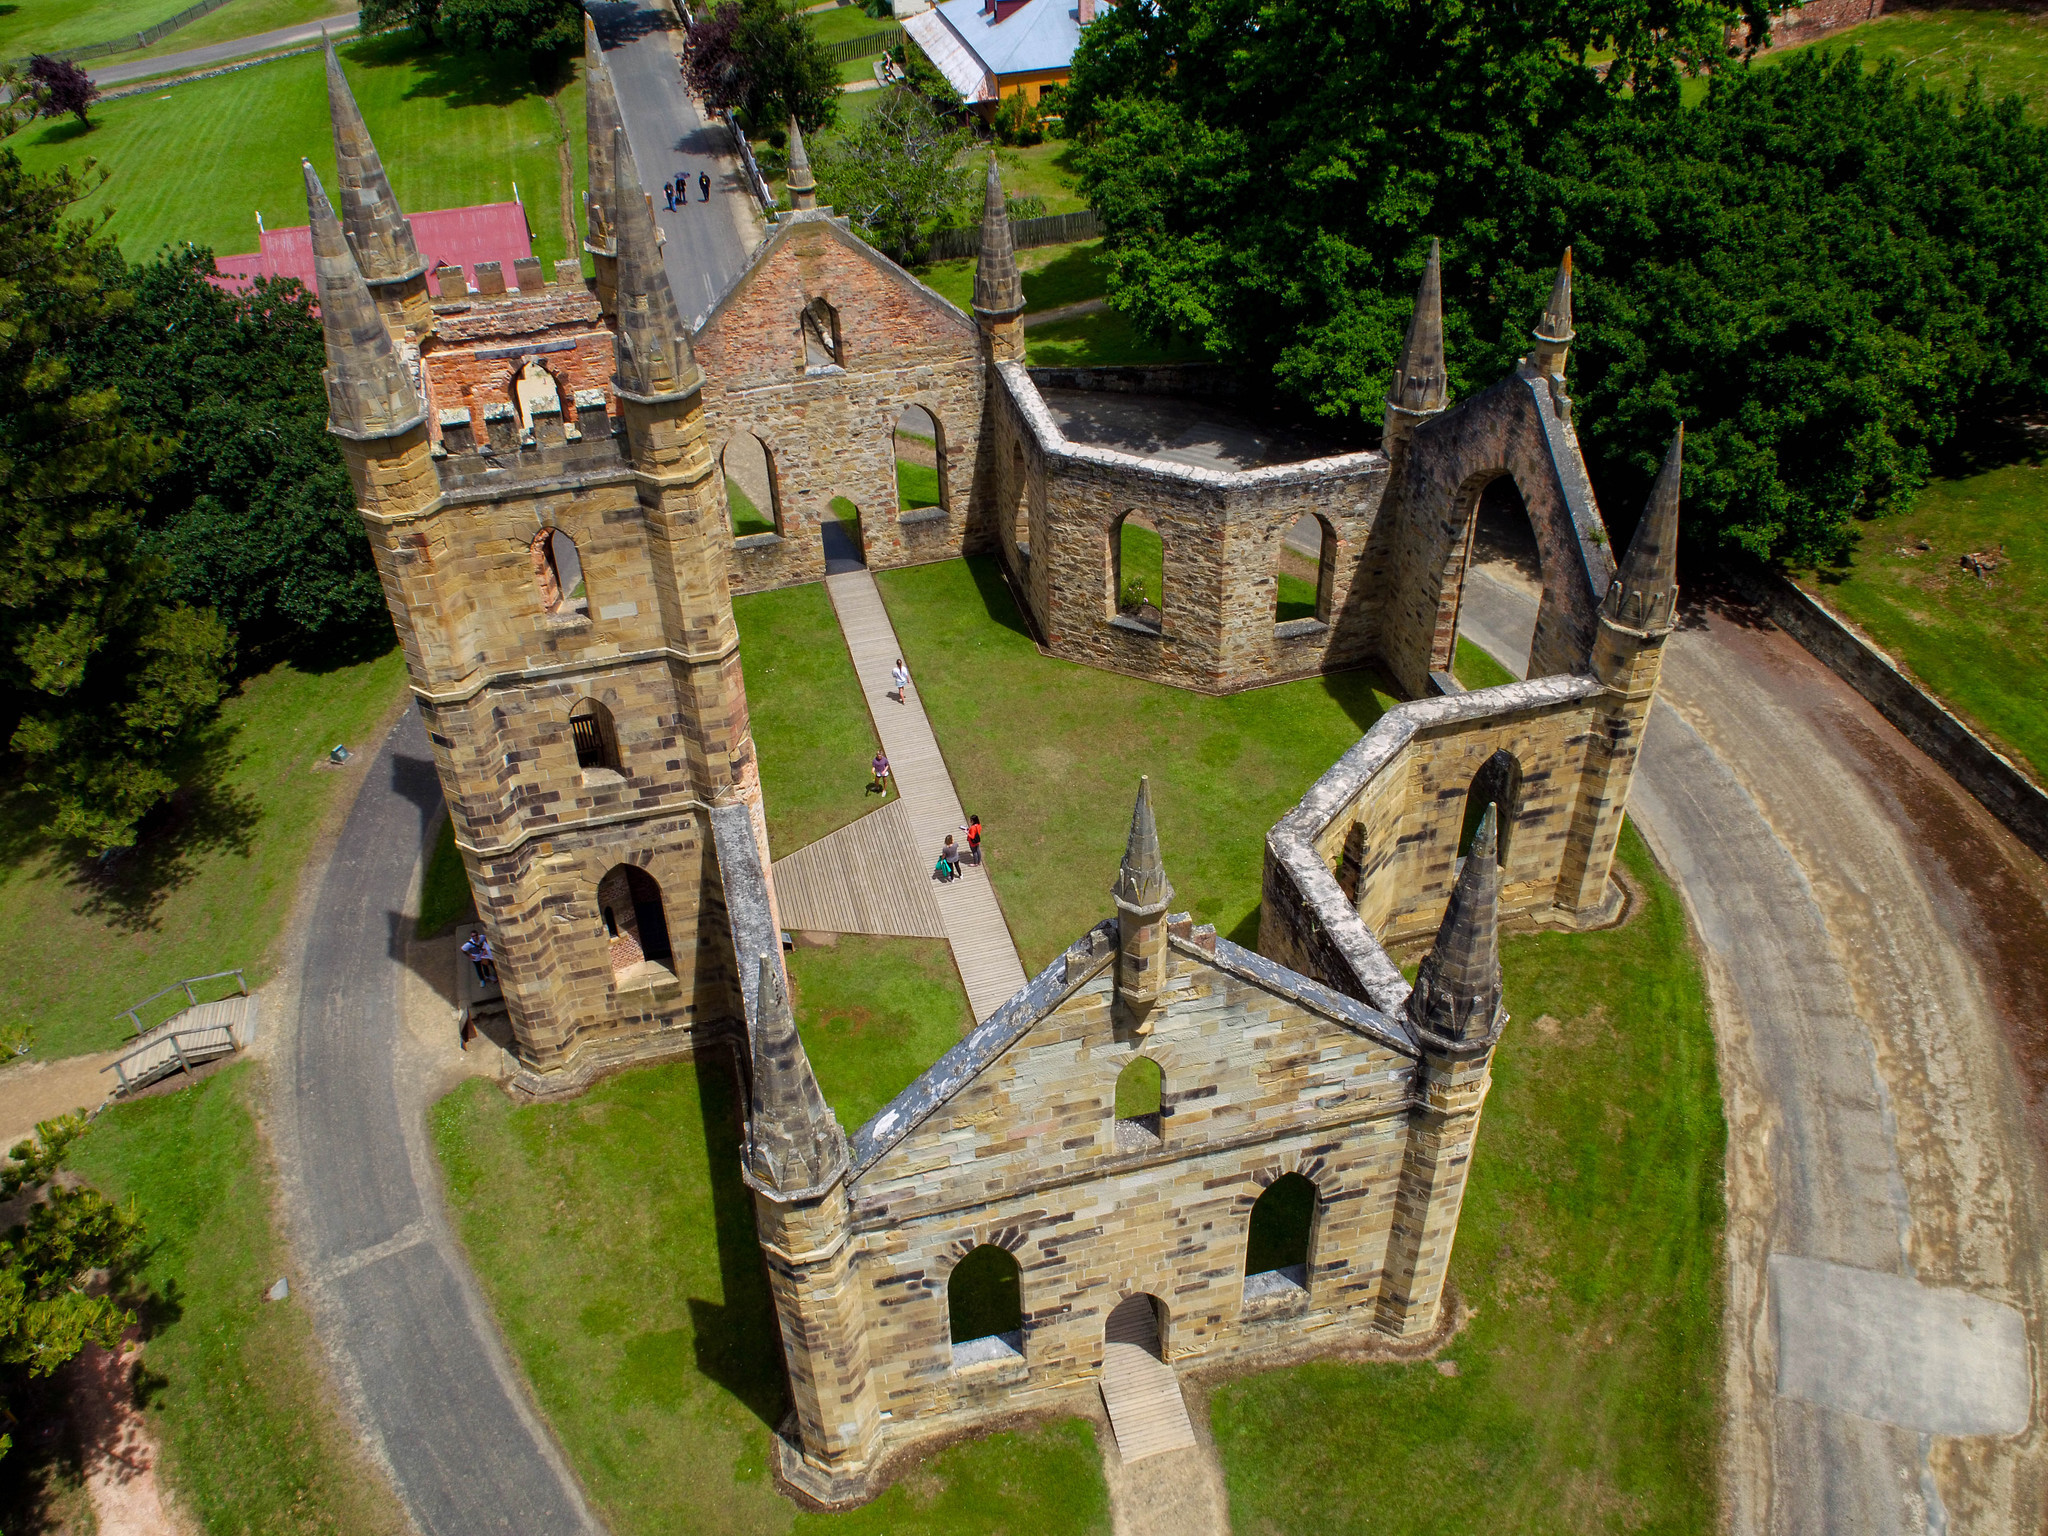 TASMANIA, AUSTRALIA - The Port Arthur Historic Site is one of Australia's most important heritage si